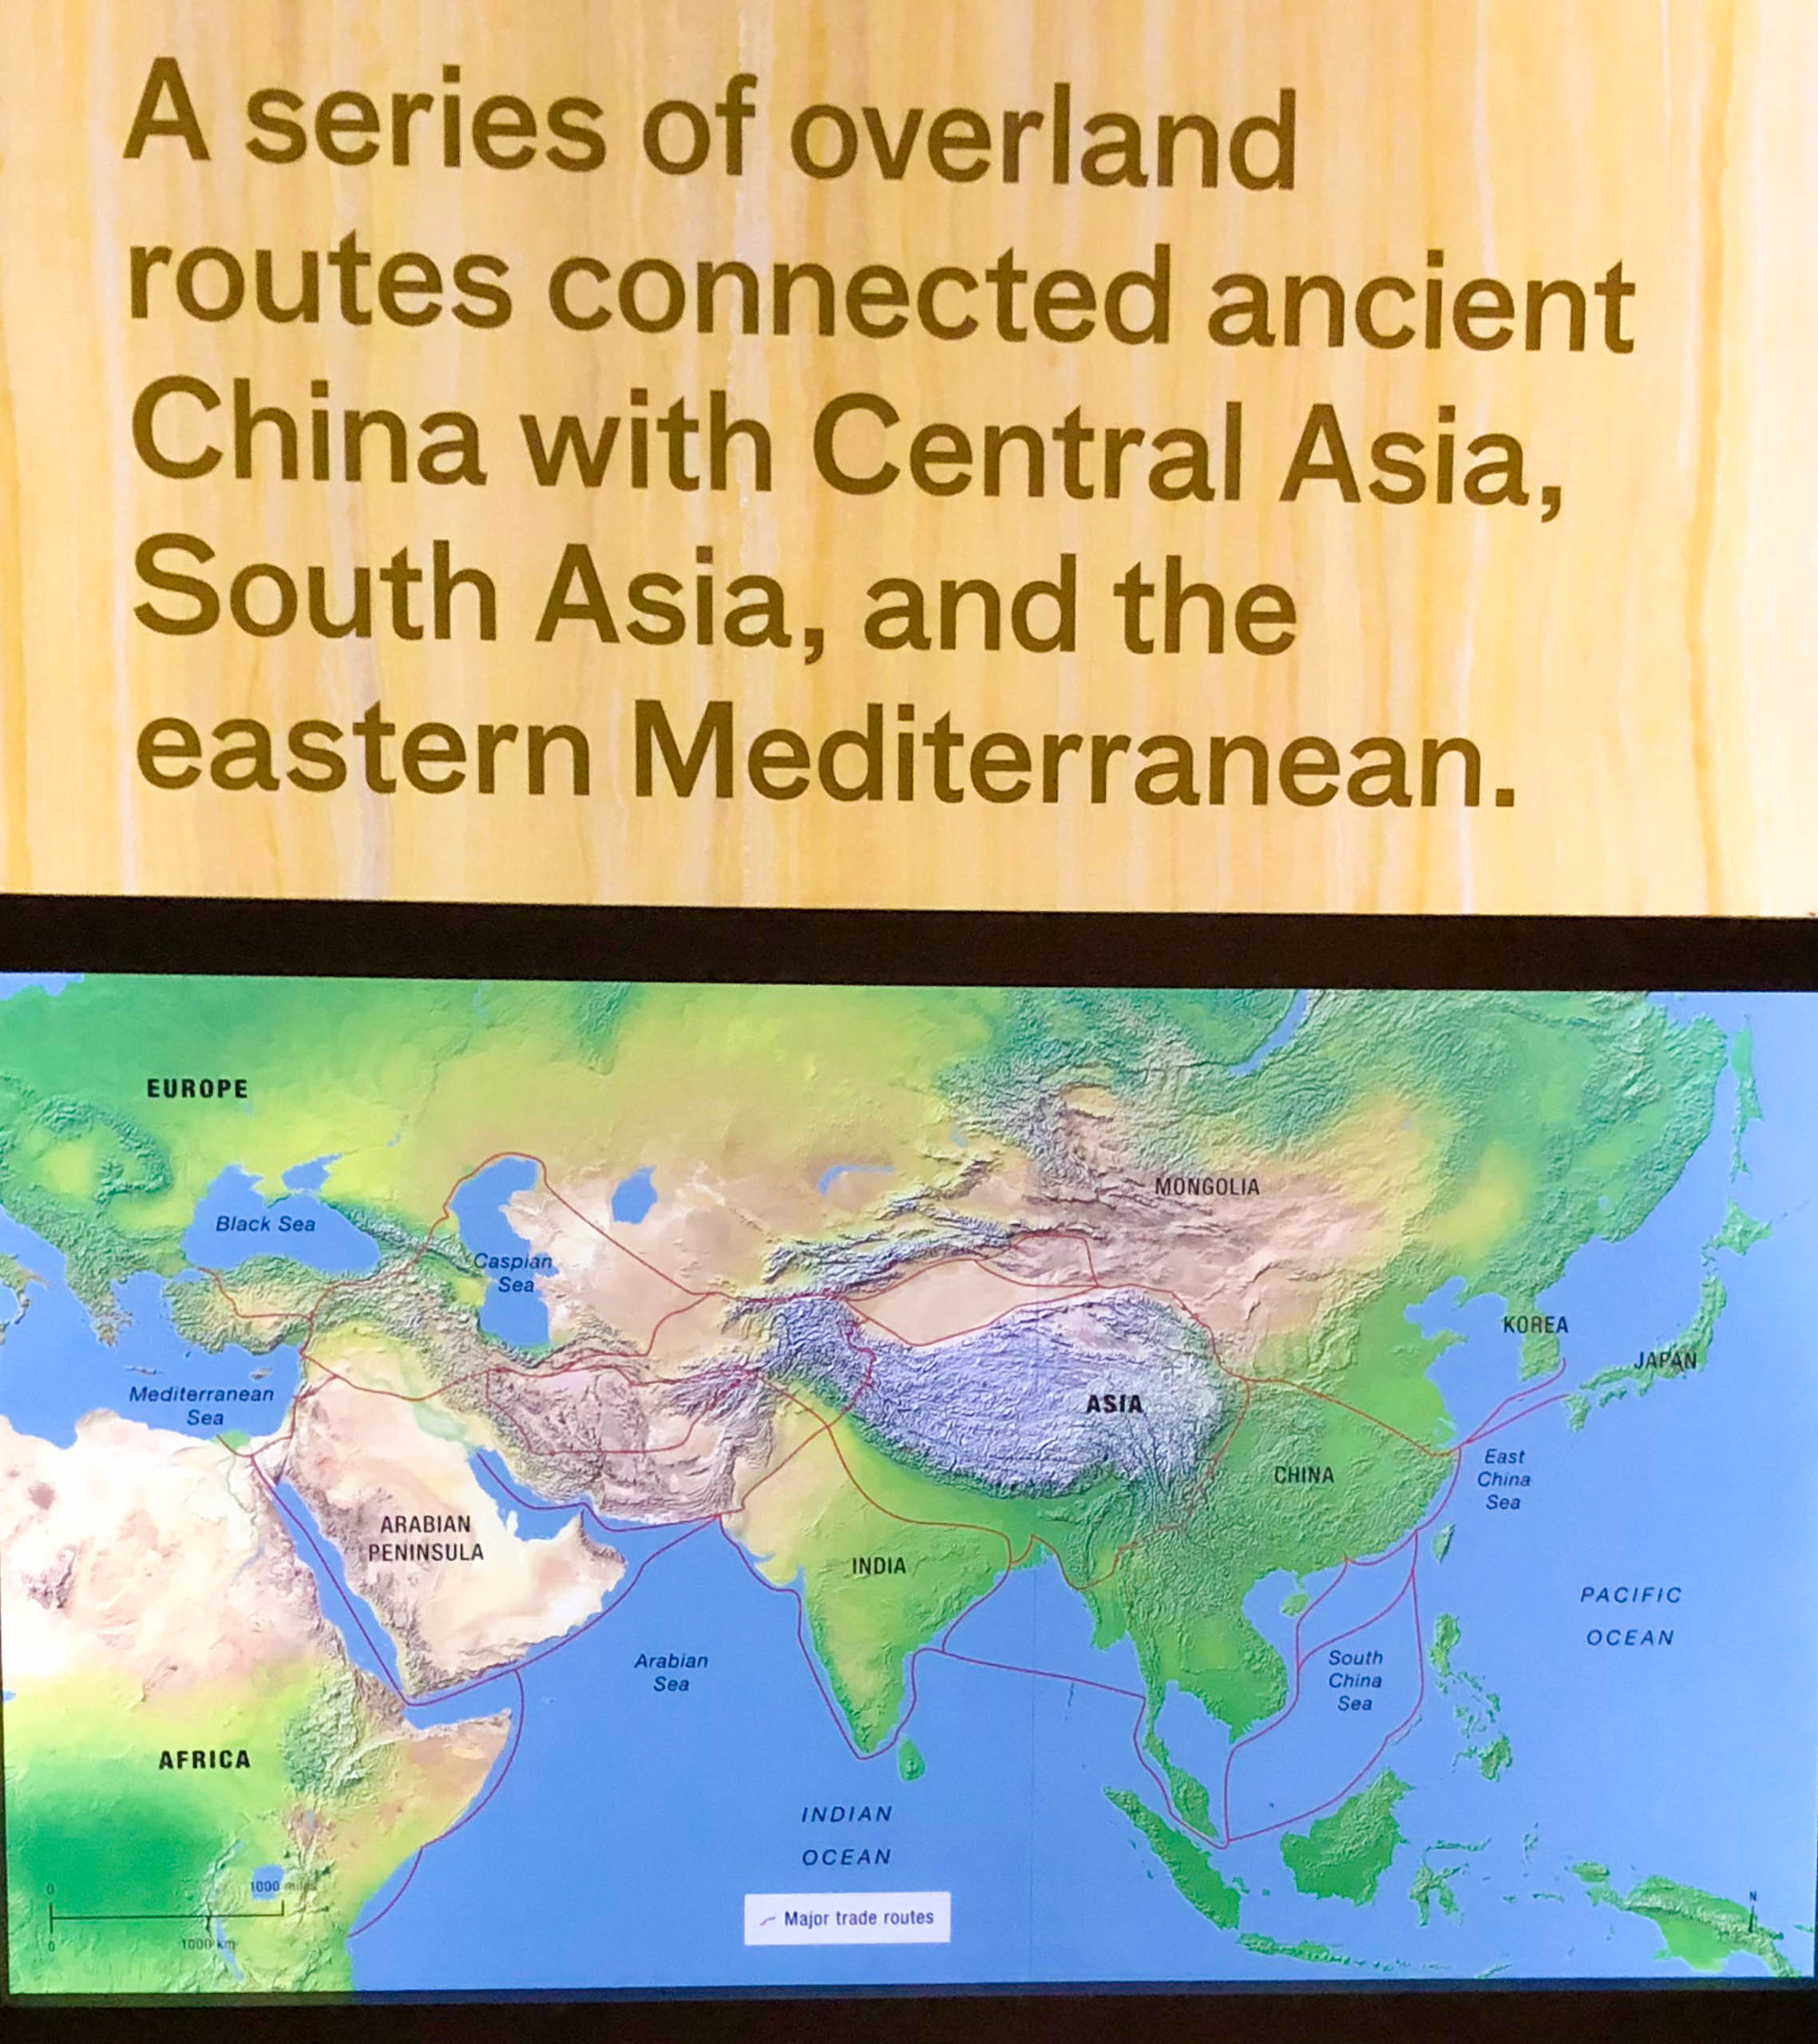 fields museum asian route.jpg